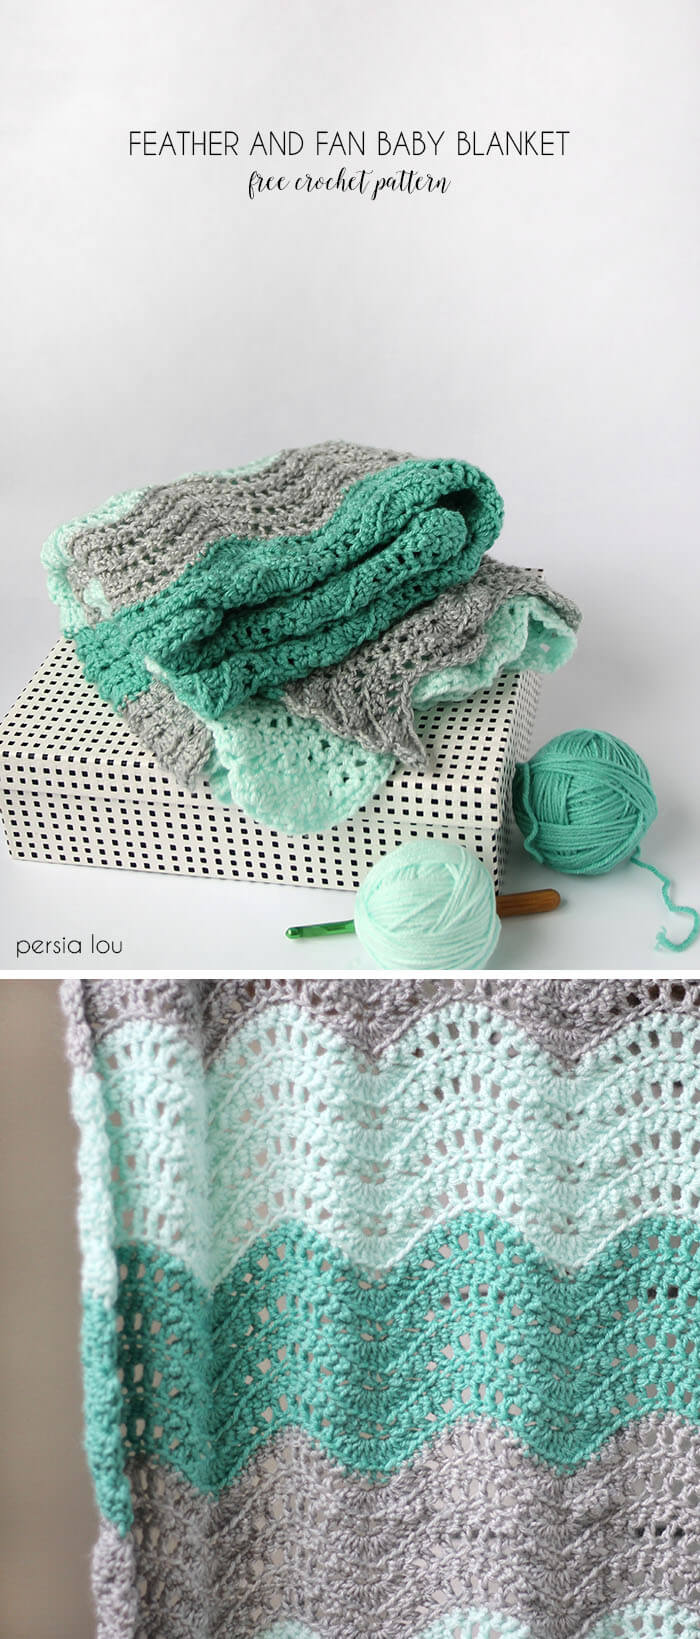 Crochet Baby Blanket Patterns Easy Free : Feather and Fan Baby Blanket Crochet Pattern - Persia Lou